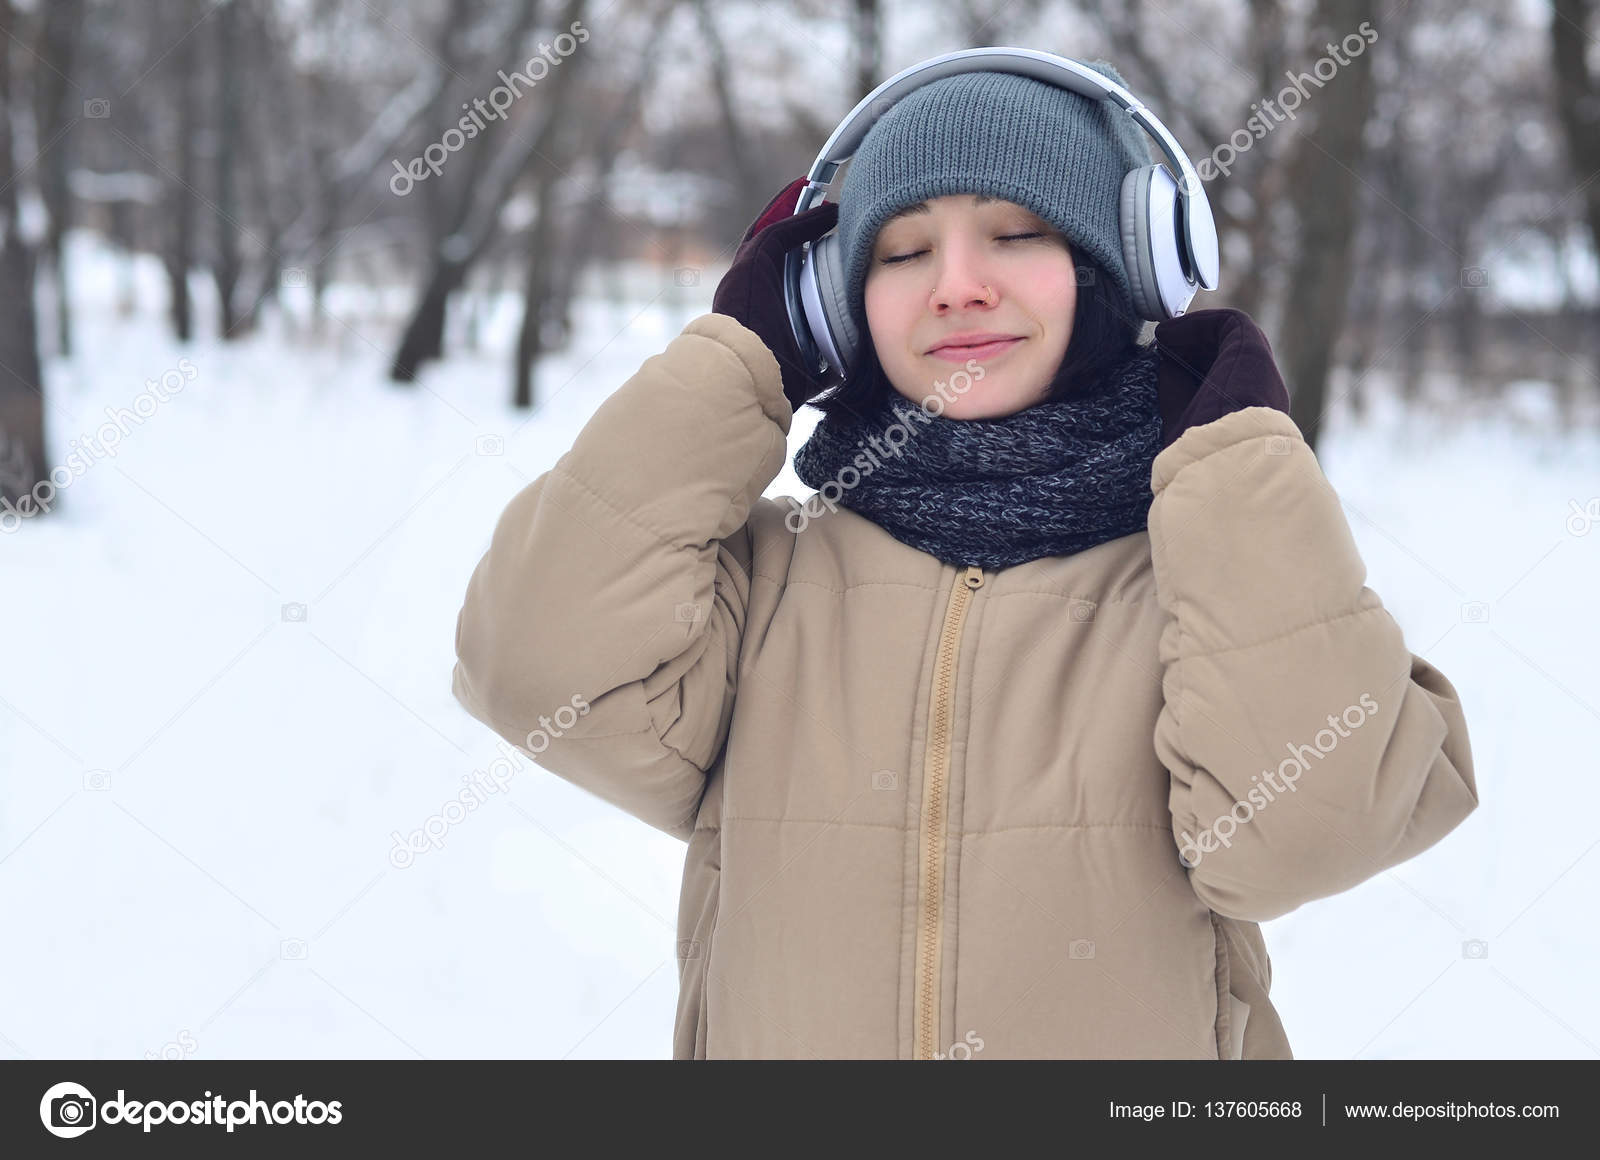 db06defa2b5e Winter portrait of young girl with headphones — Stock Photo ...